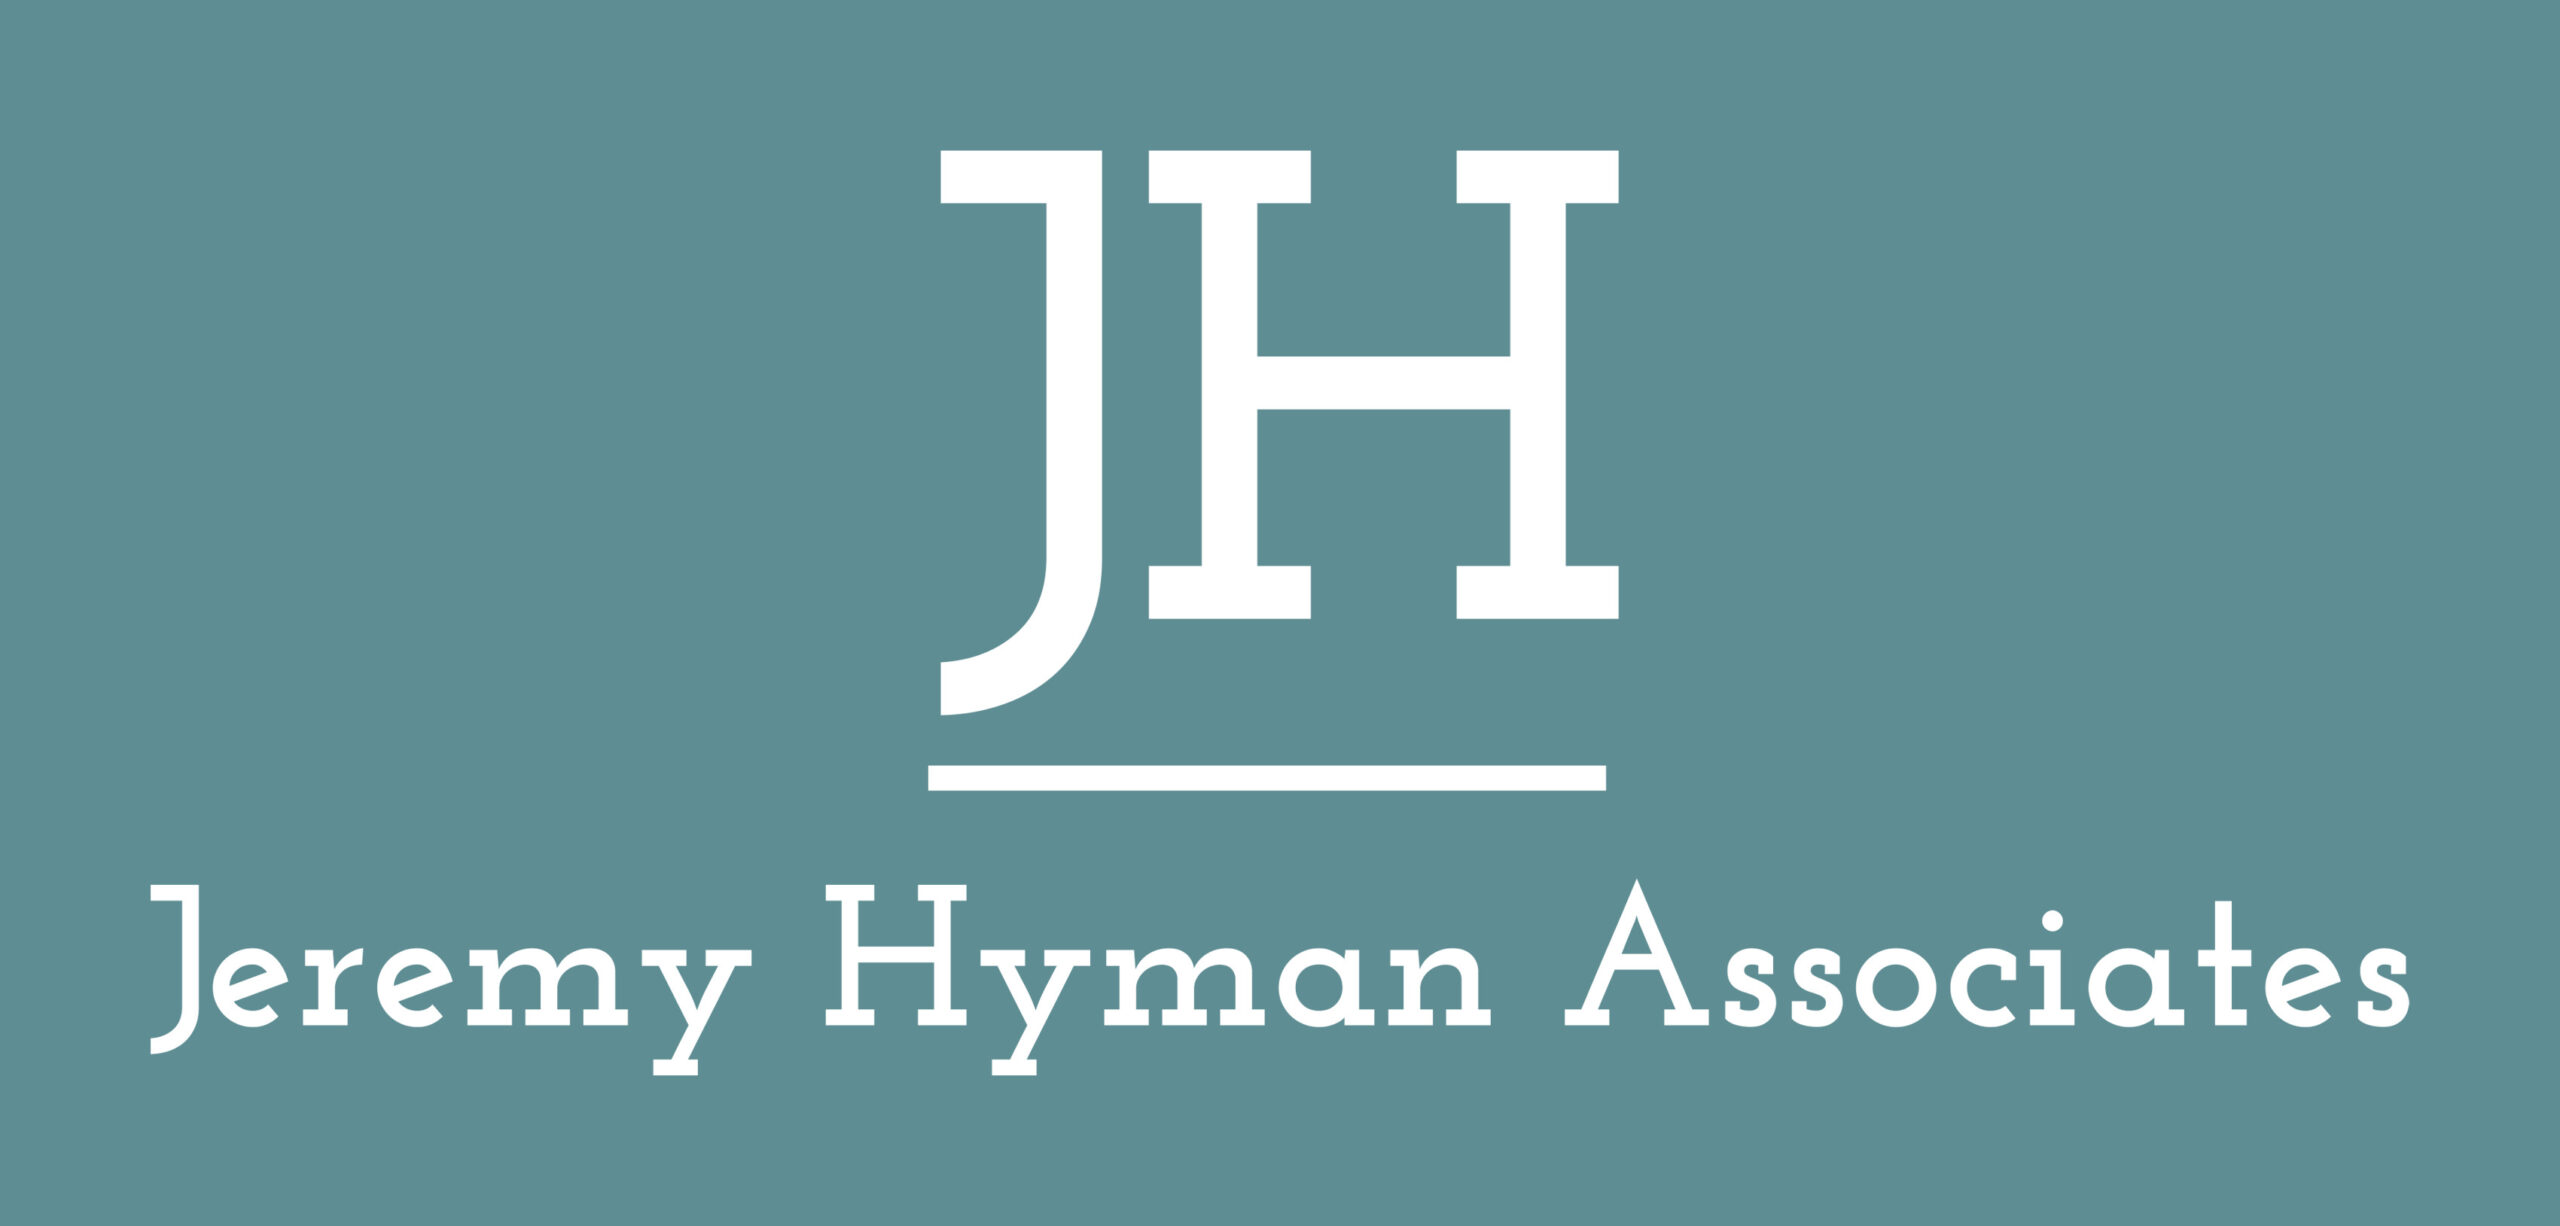 Jeremy Hyman Associates